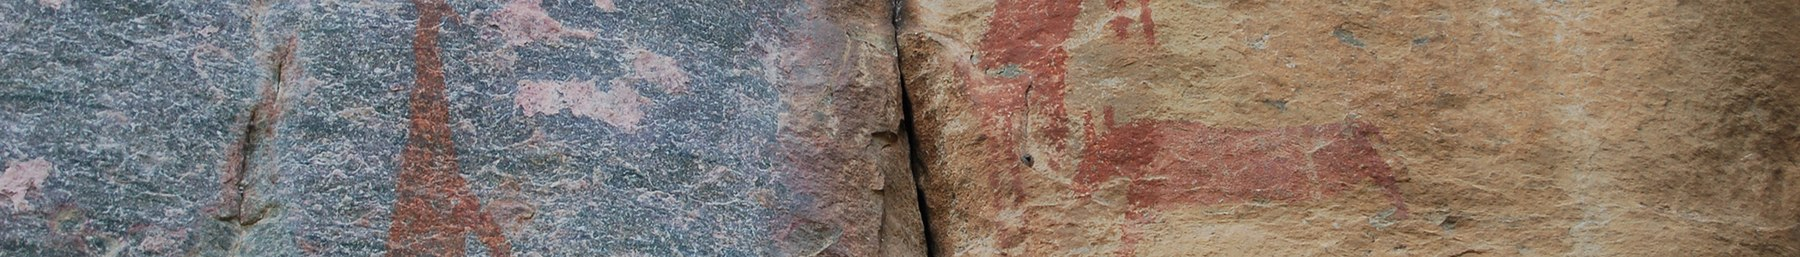 Tsodilo Hills rock paintings